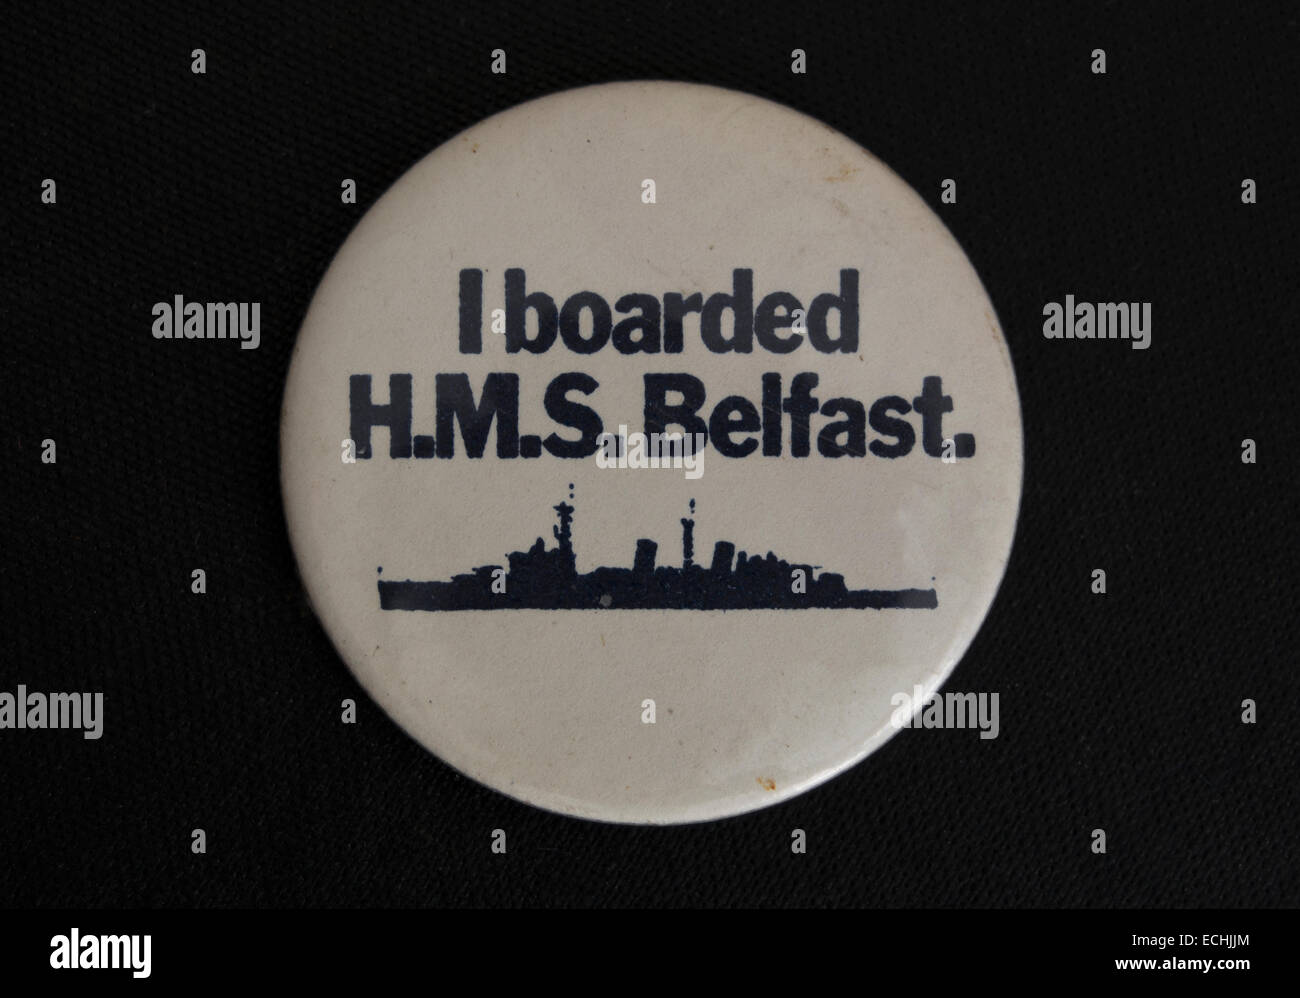 i boarded hms belfast, lapel badge souvenir from the tourist attraction ship on the river thames in london, england - Stock Image